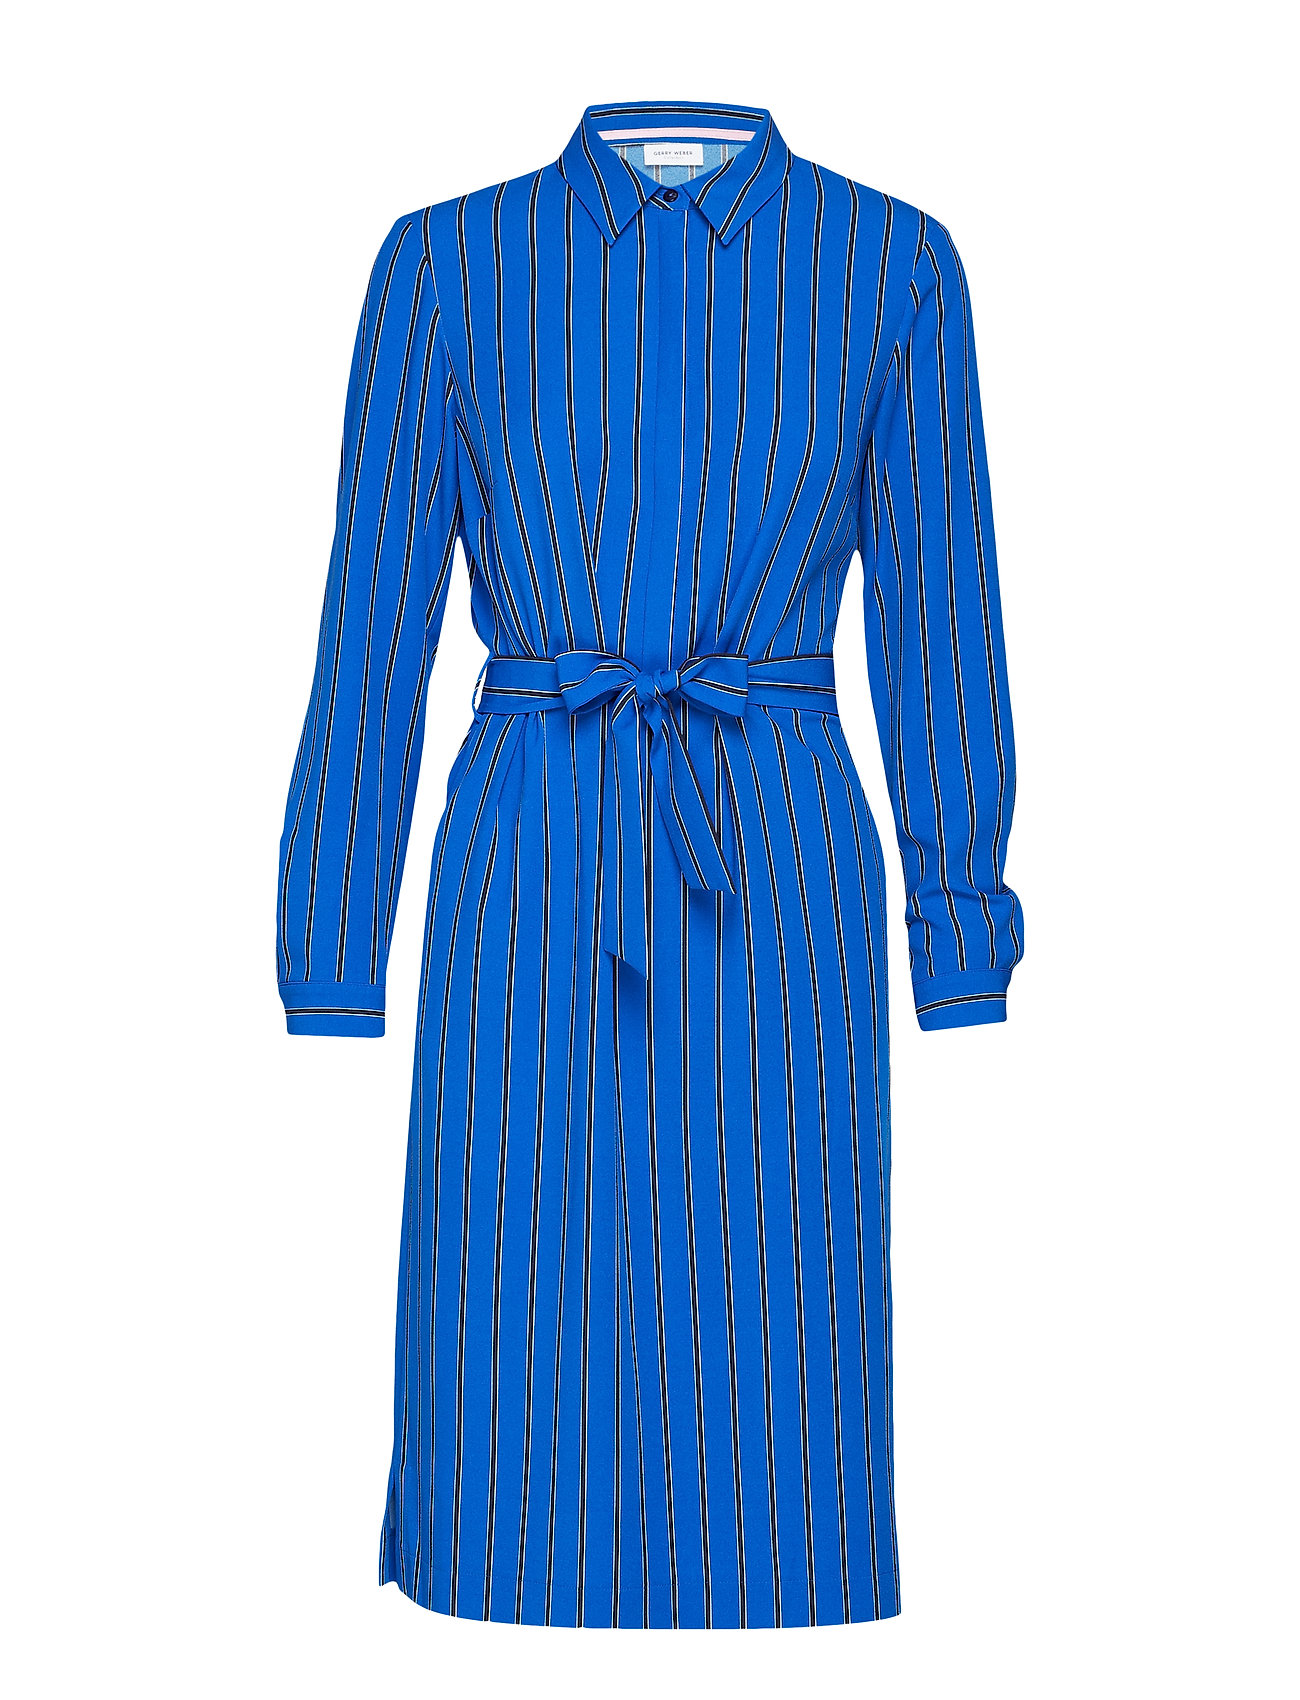 Gerry Weber DRESS WOVEN FABRIC - BLUE/ECRU/WHITE STRIPES